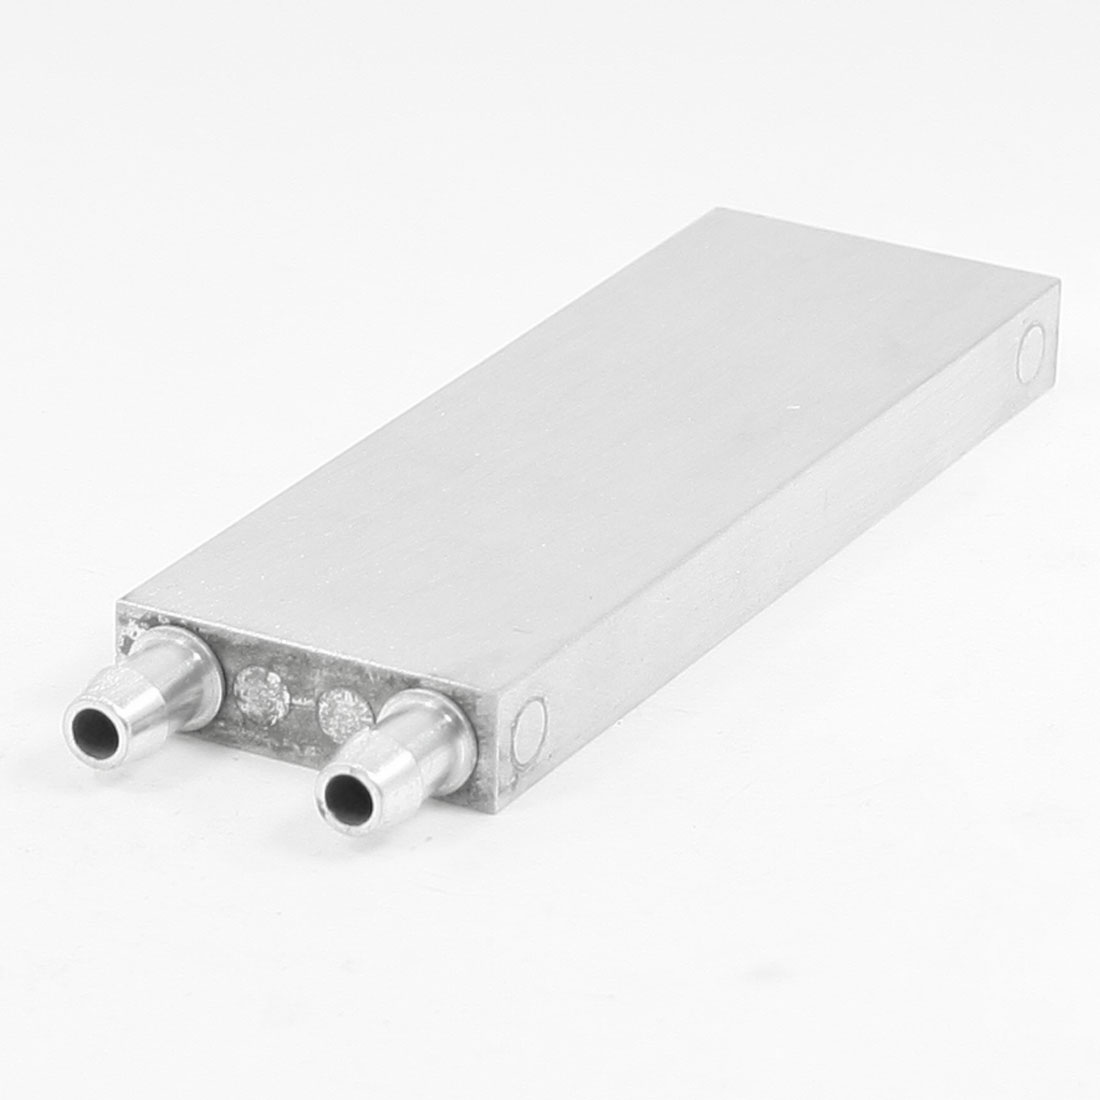 120x40x12mm Aluminum Water Cooling Block for CPU Graphics Radiator Heatsink